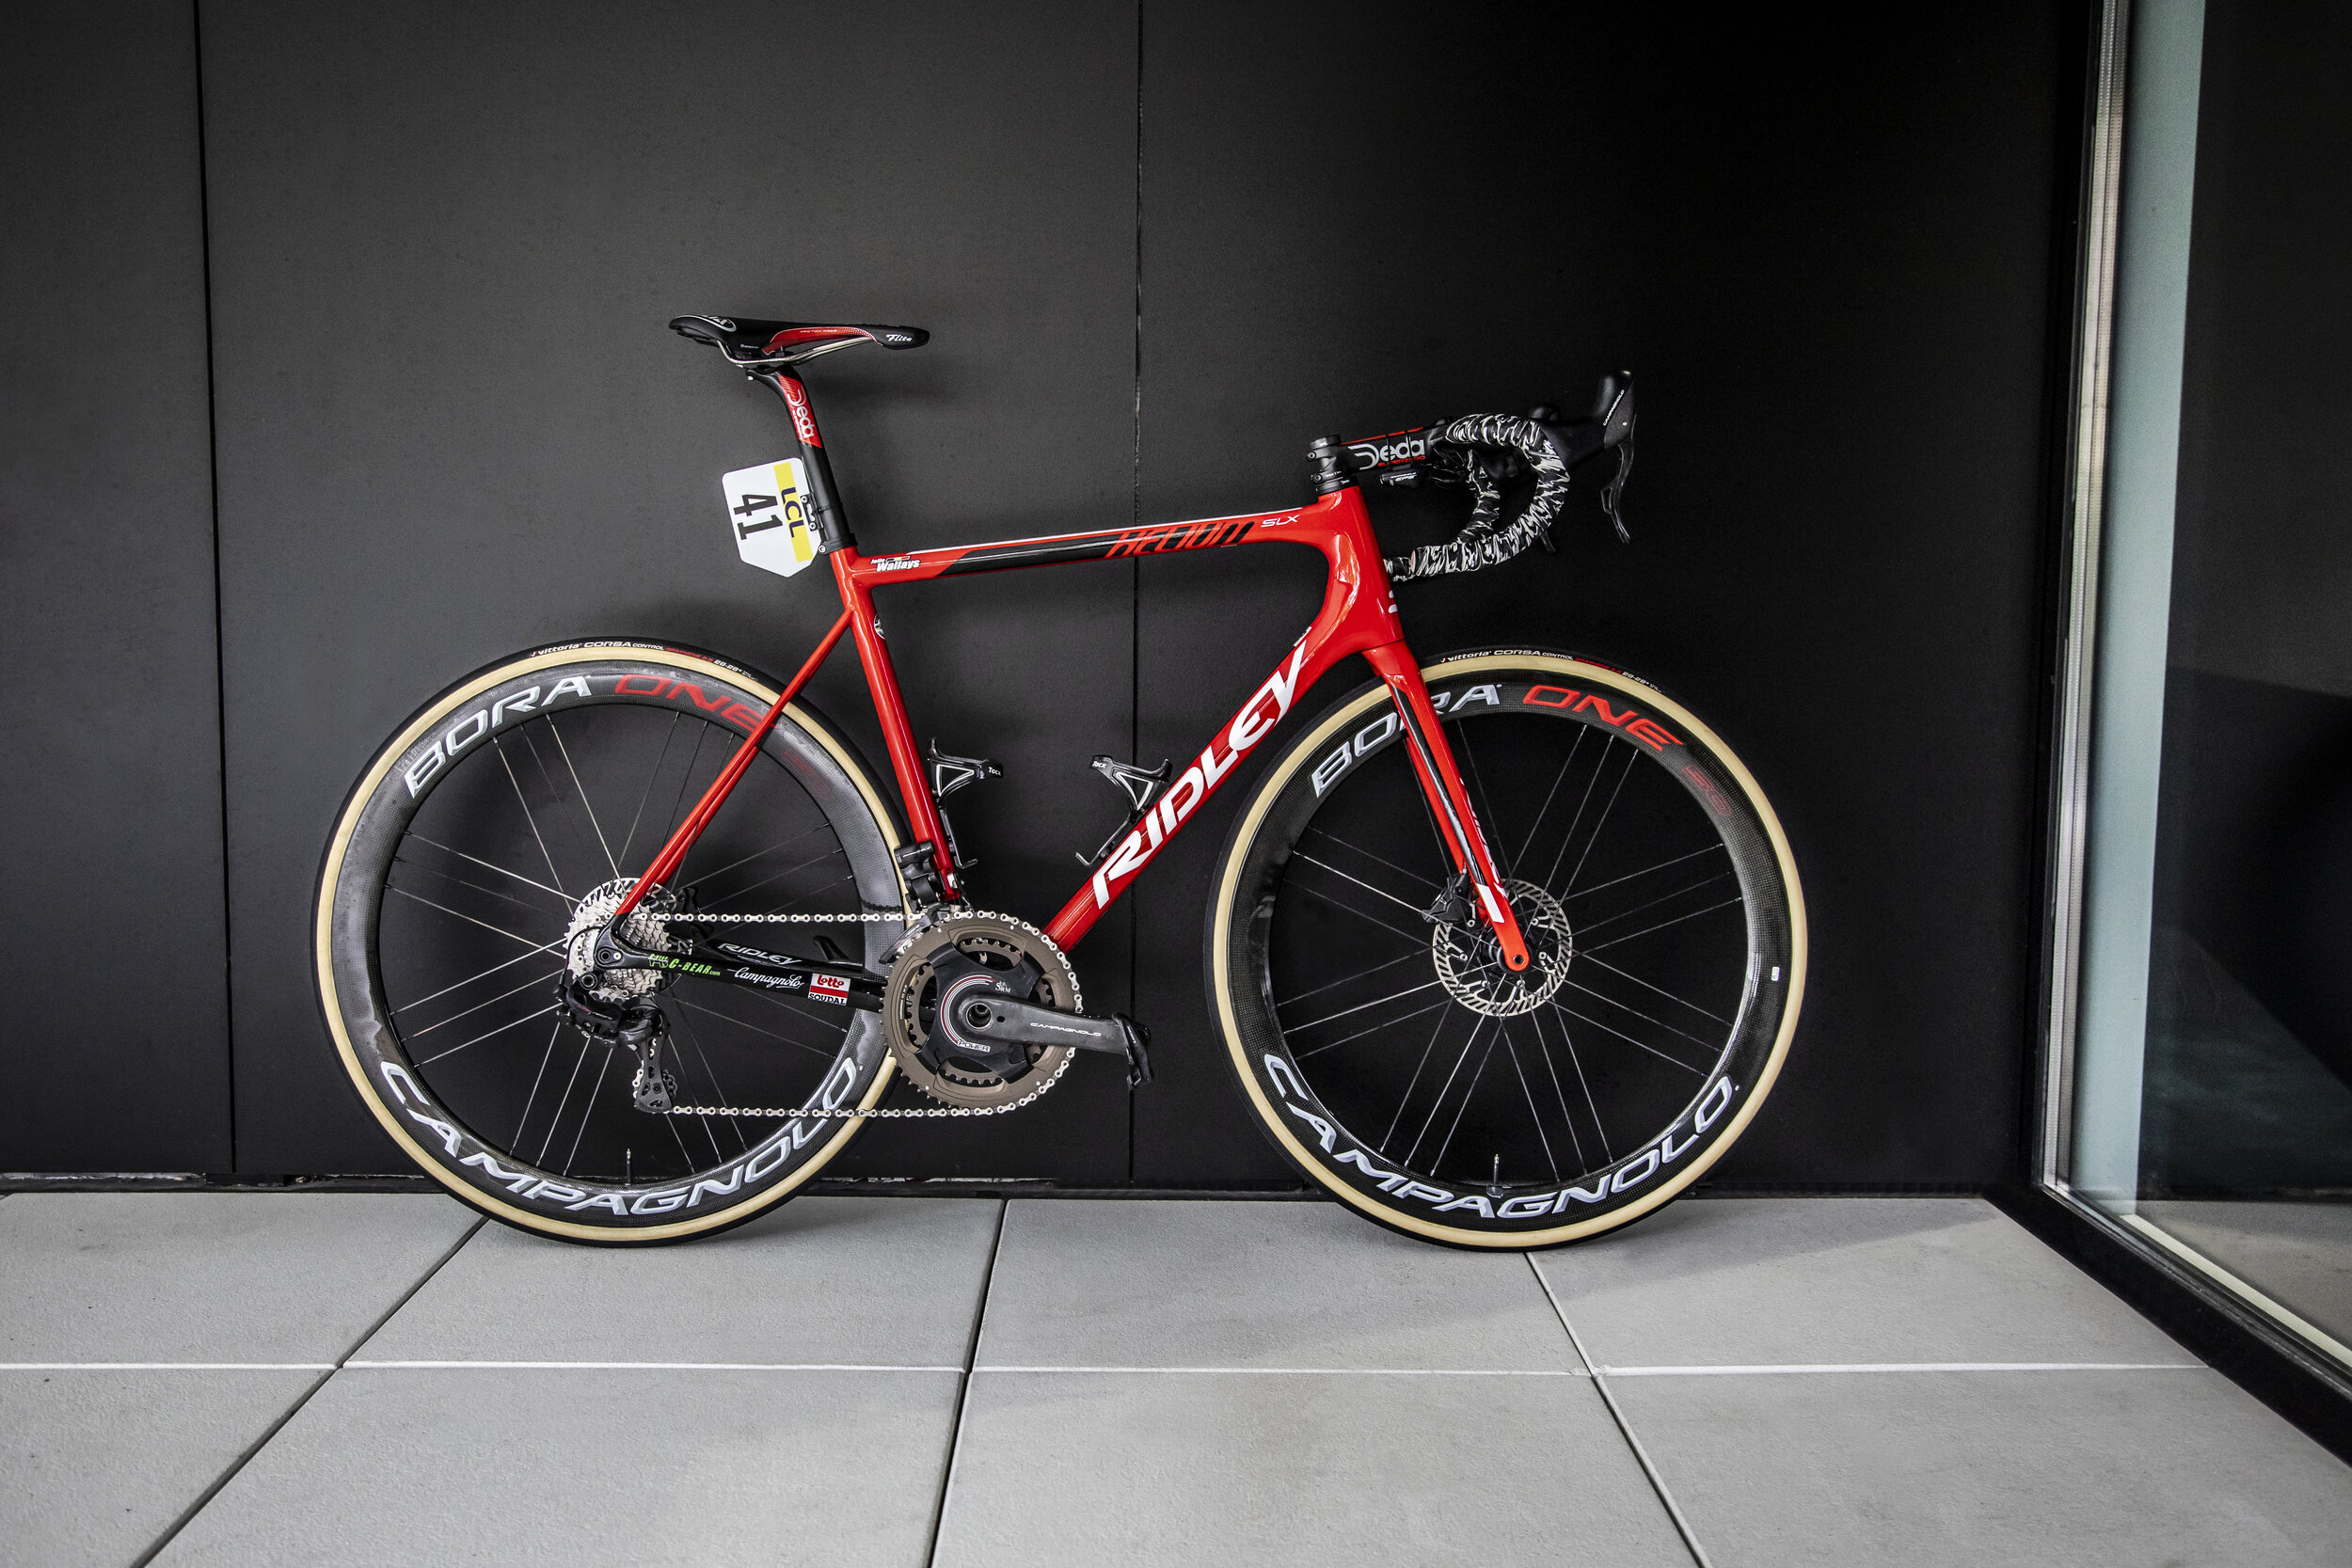 Ridley Releases Ultralight Helium Slx Disc Building On Already Impressive Race Frame Pedigree Hairpins Not Hairshorts